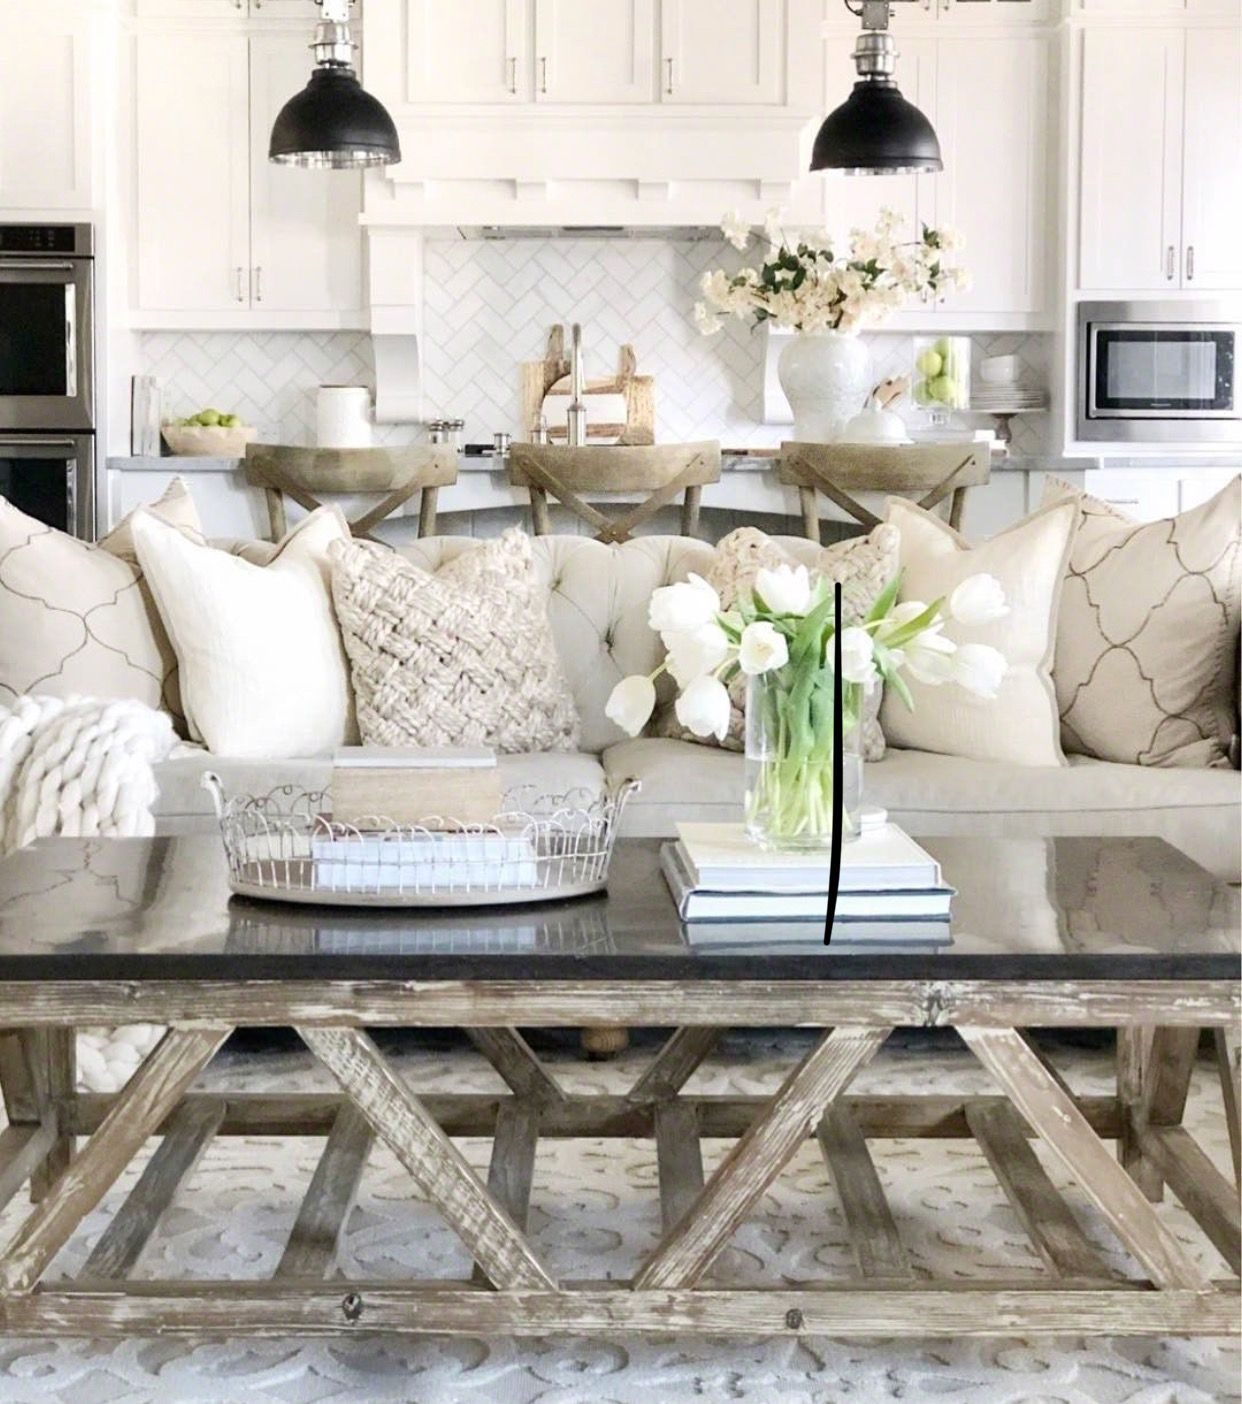 Large Sofa Sectional and Rustic Table